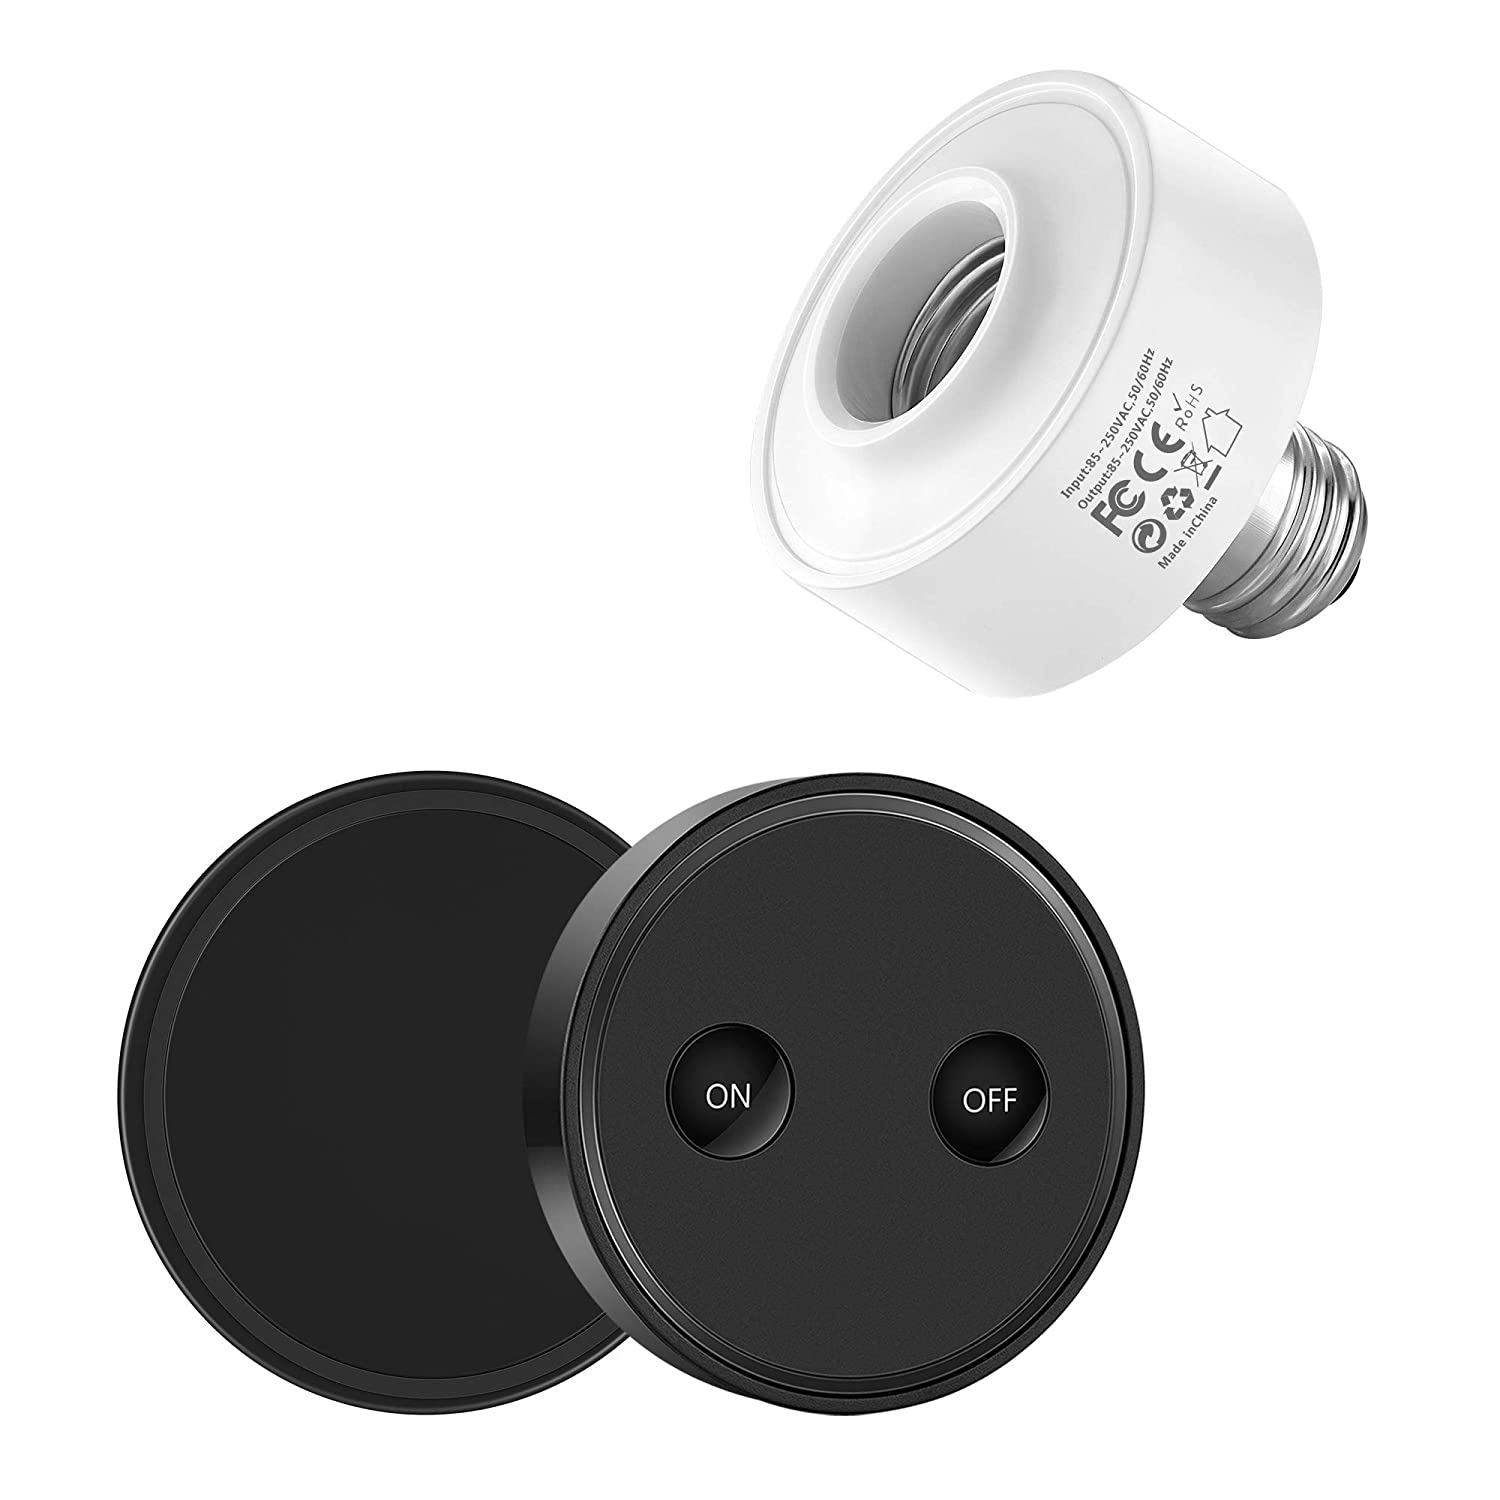 Black 5 Years Warranty LoraTap Wireless Remote Control E26 E27 Light Socket Kit 656ft 915MHz Range On Off Switch for LED Bulbs and Fixtures 30W Max